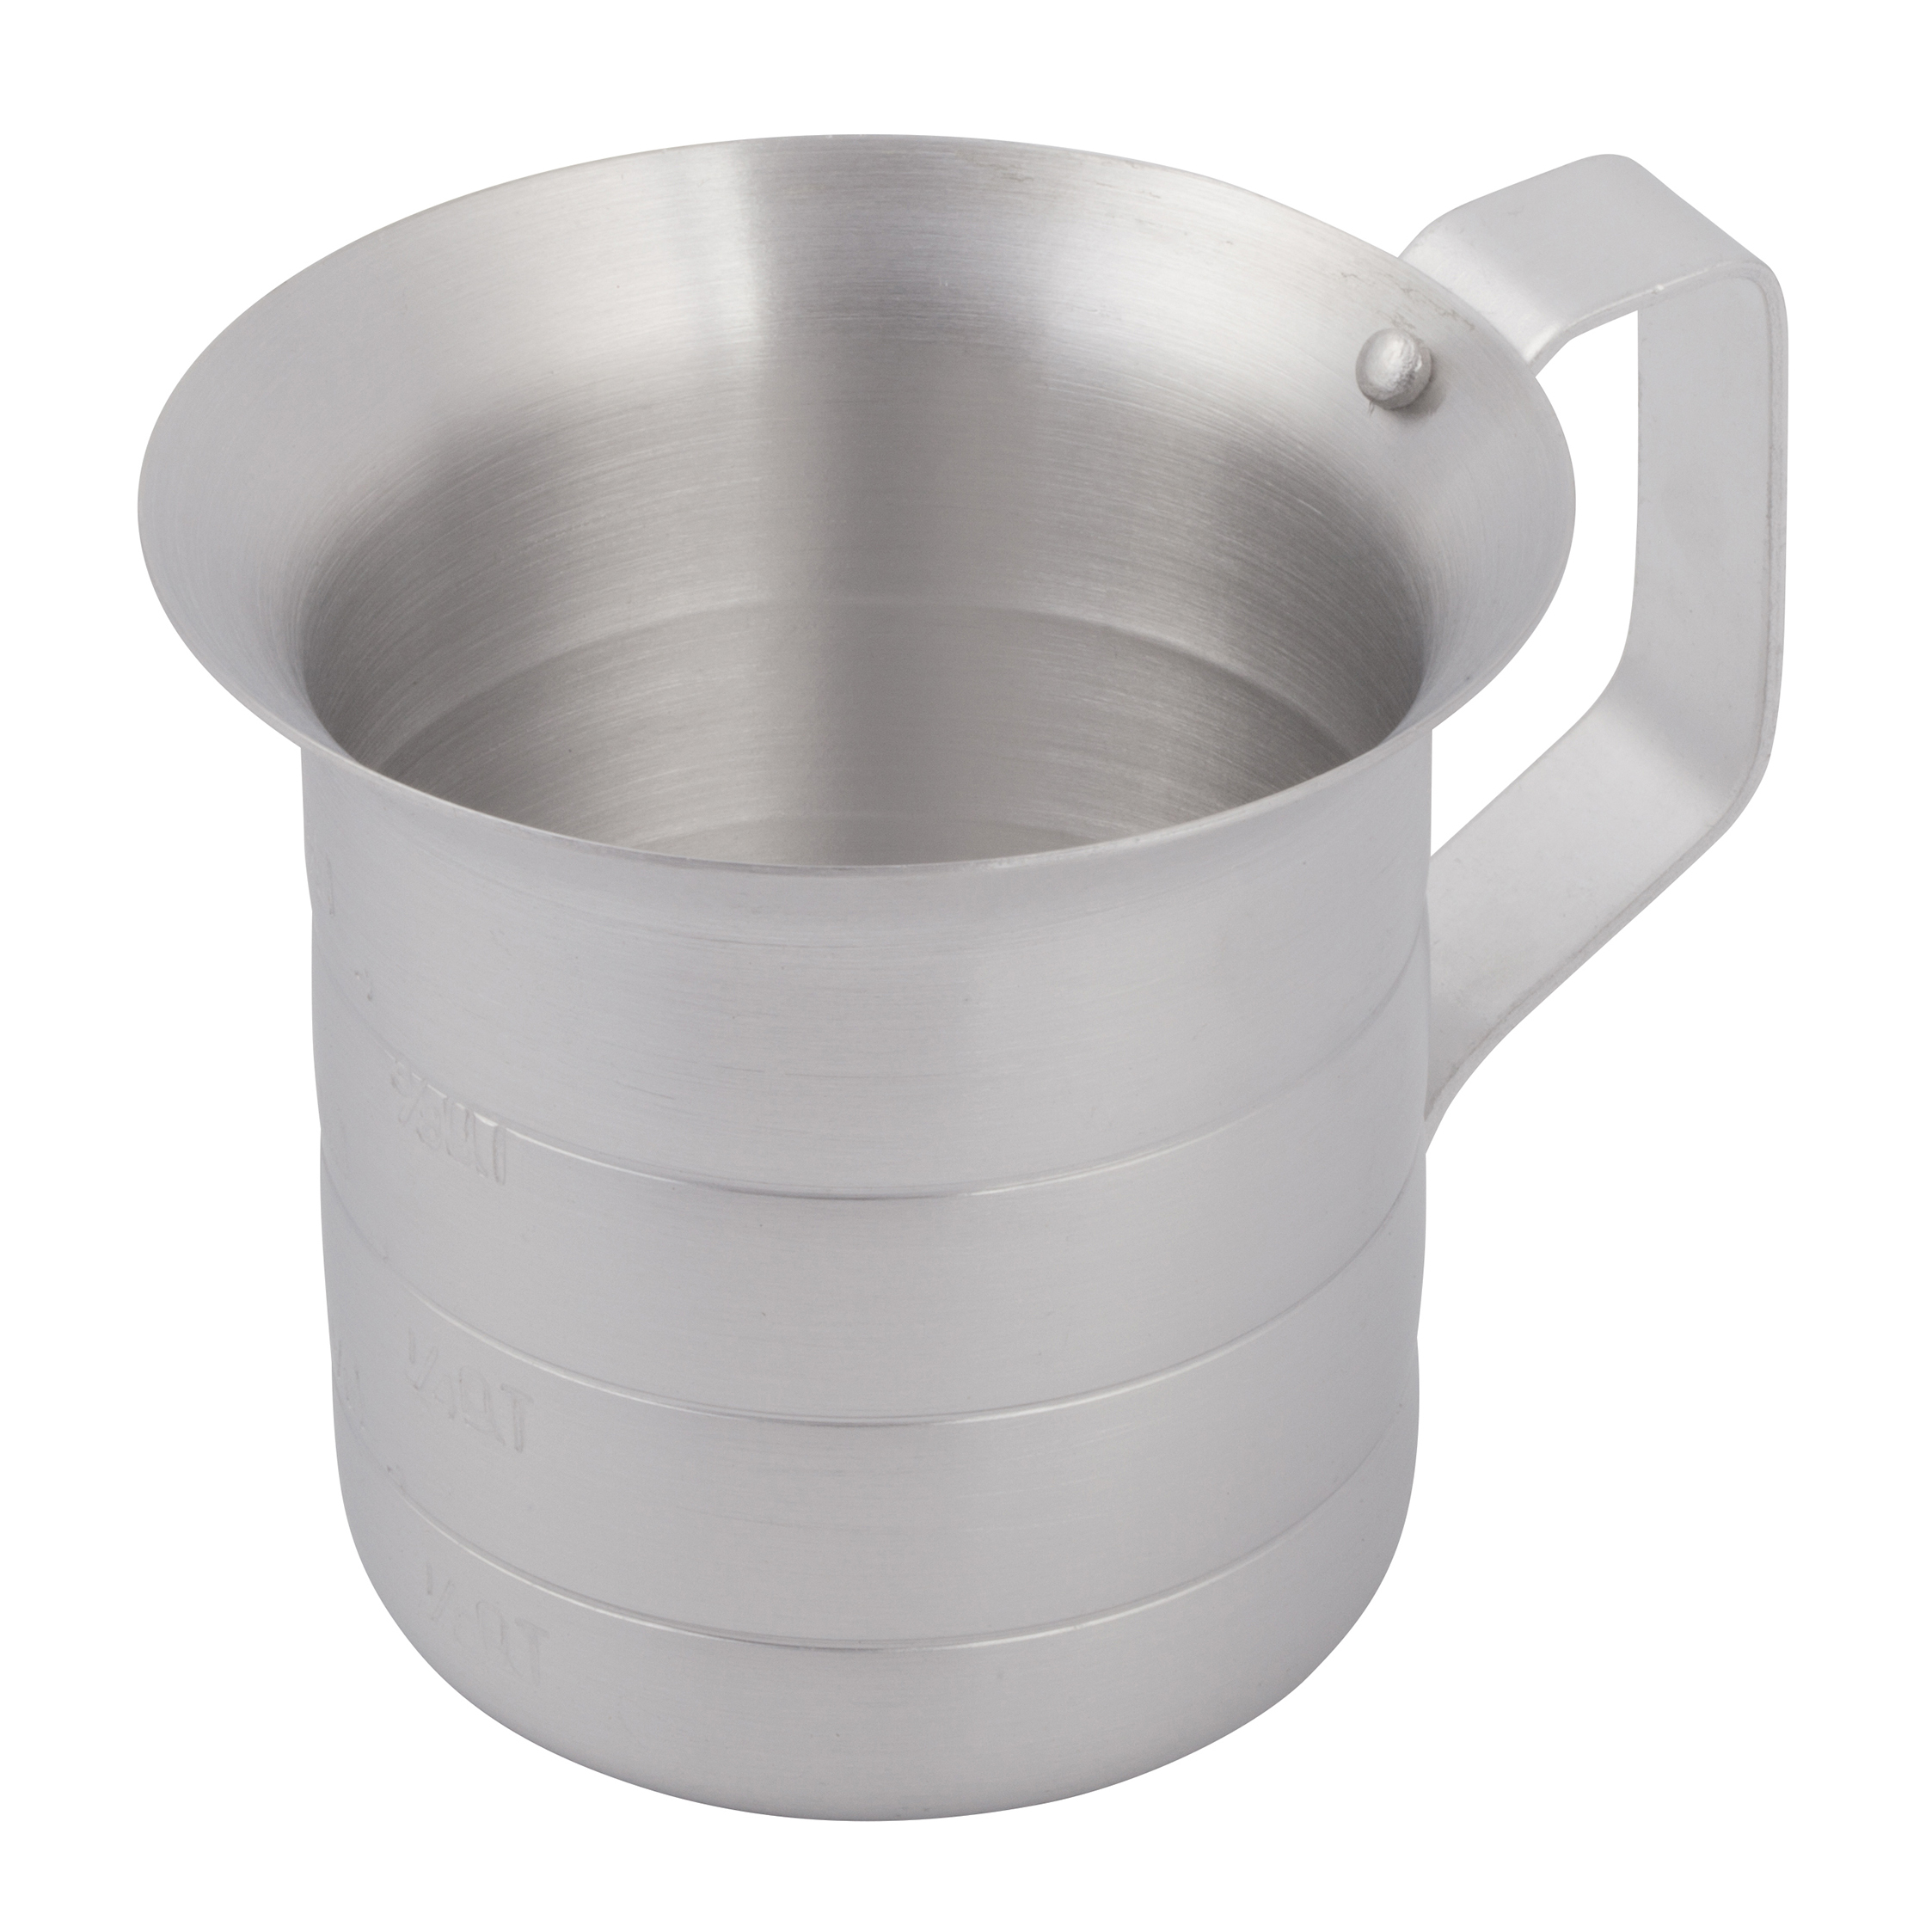 Winco AM-05 measuring cups